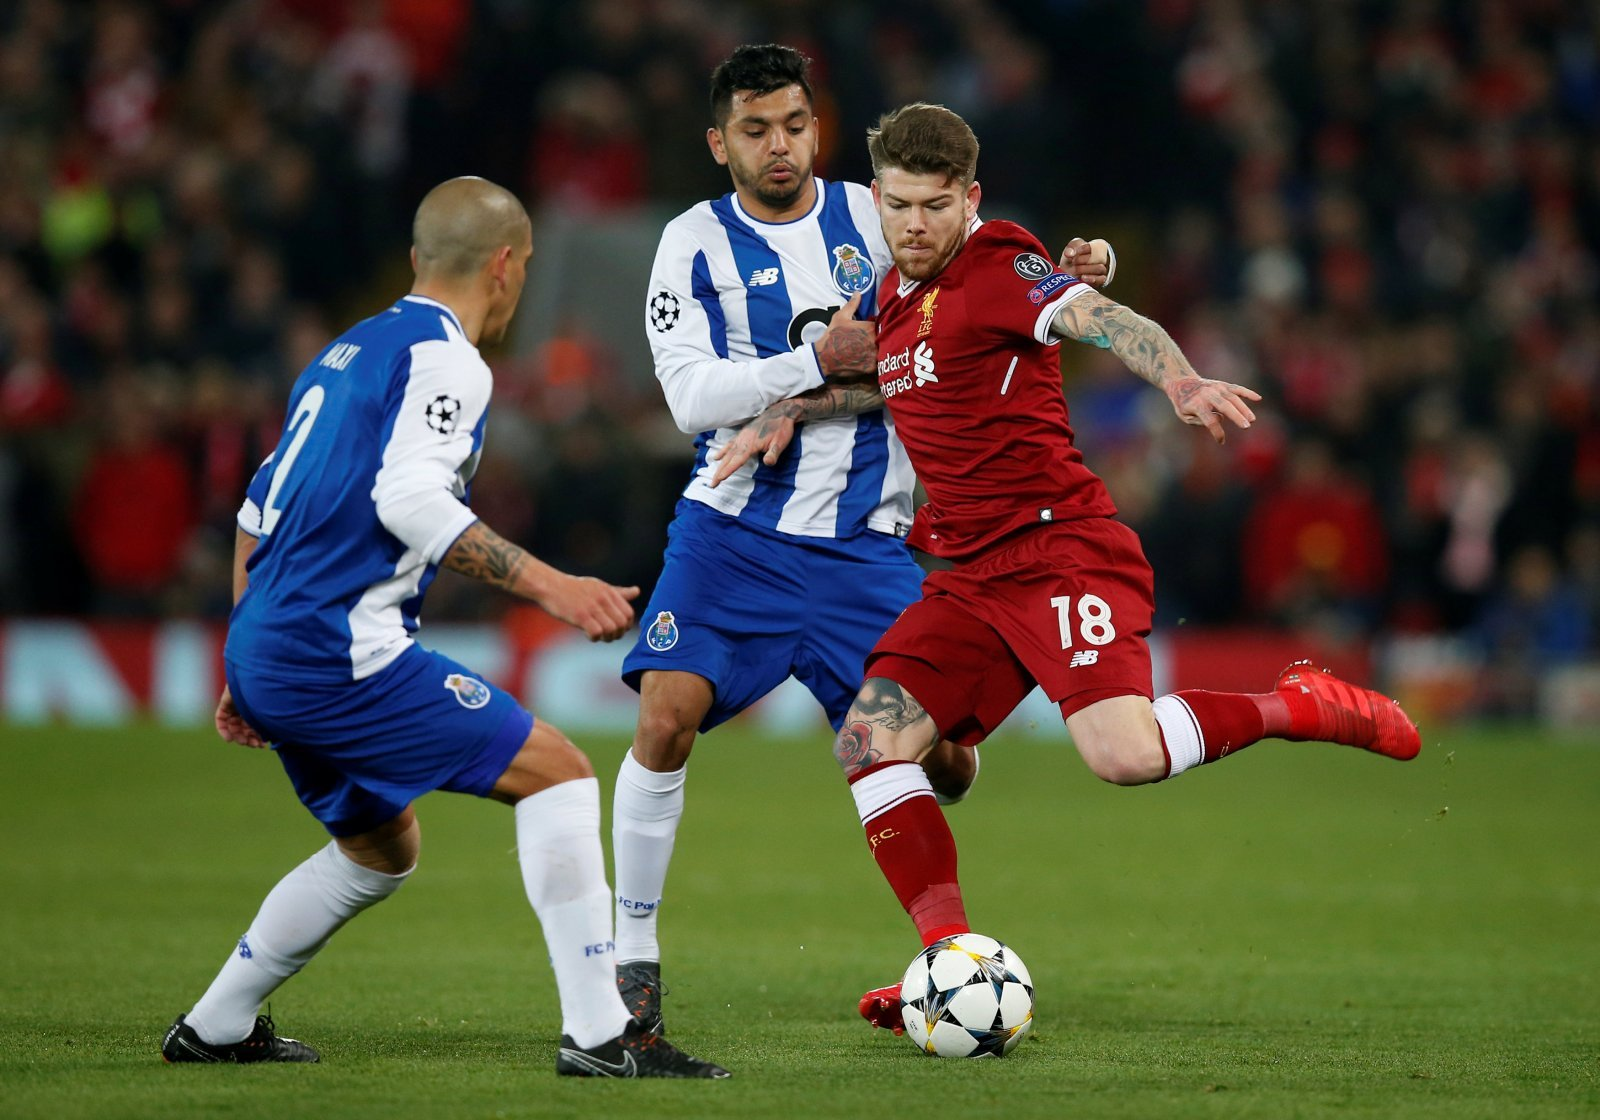 Alberto Moreno could be the perfect man to challenge Barry Douglas